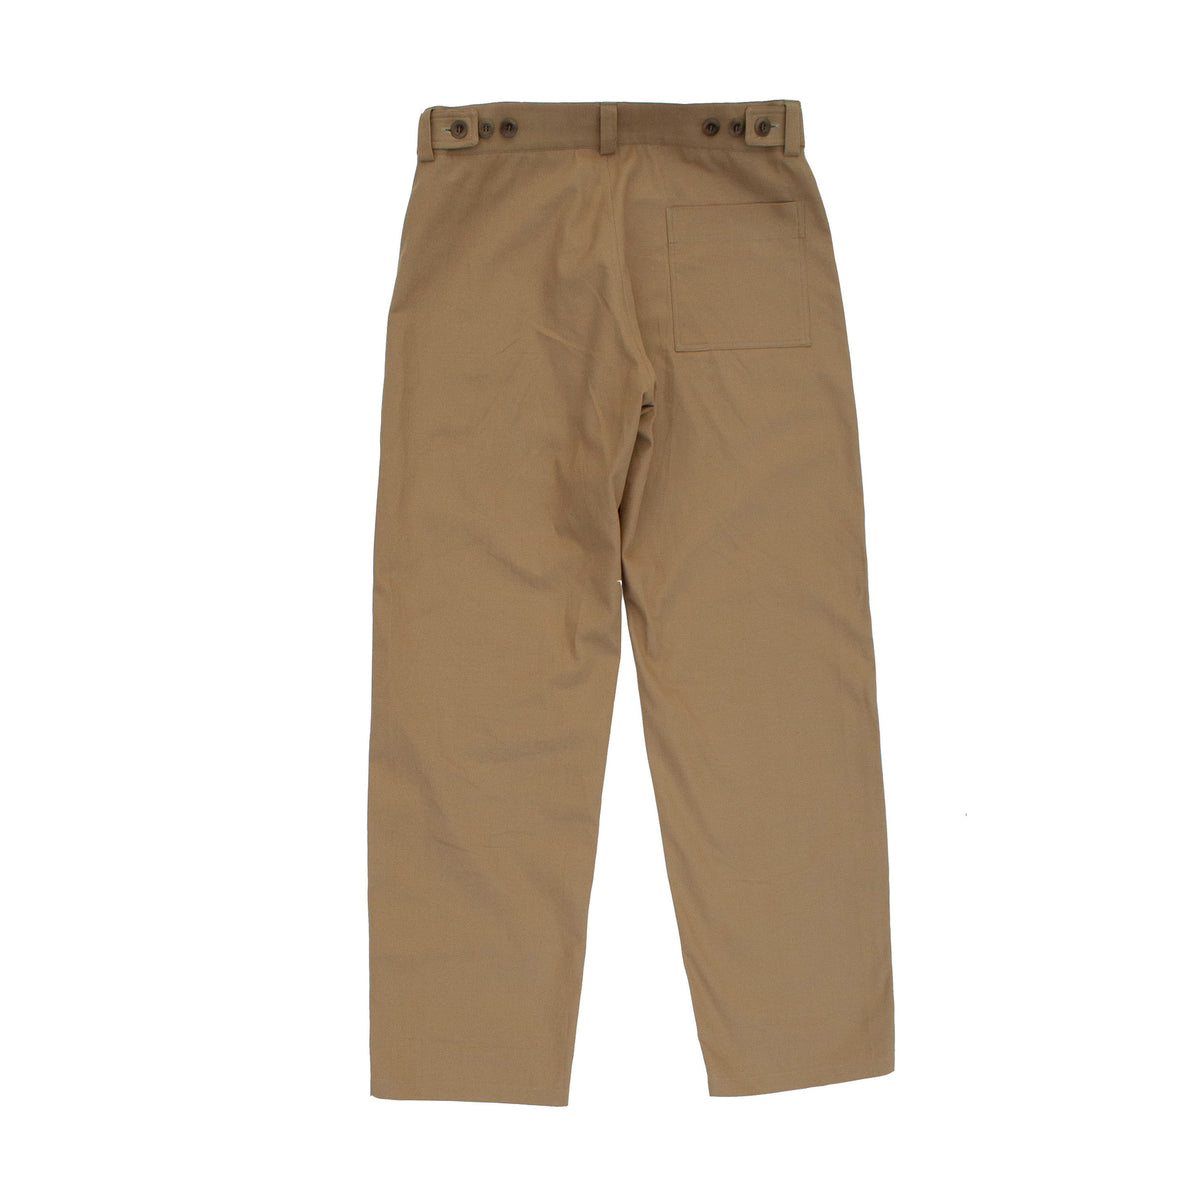 pajotten menswear back view of cotton canvas chore trousers in tan